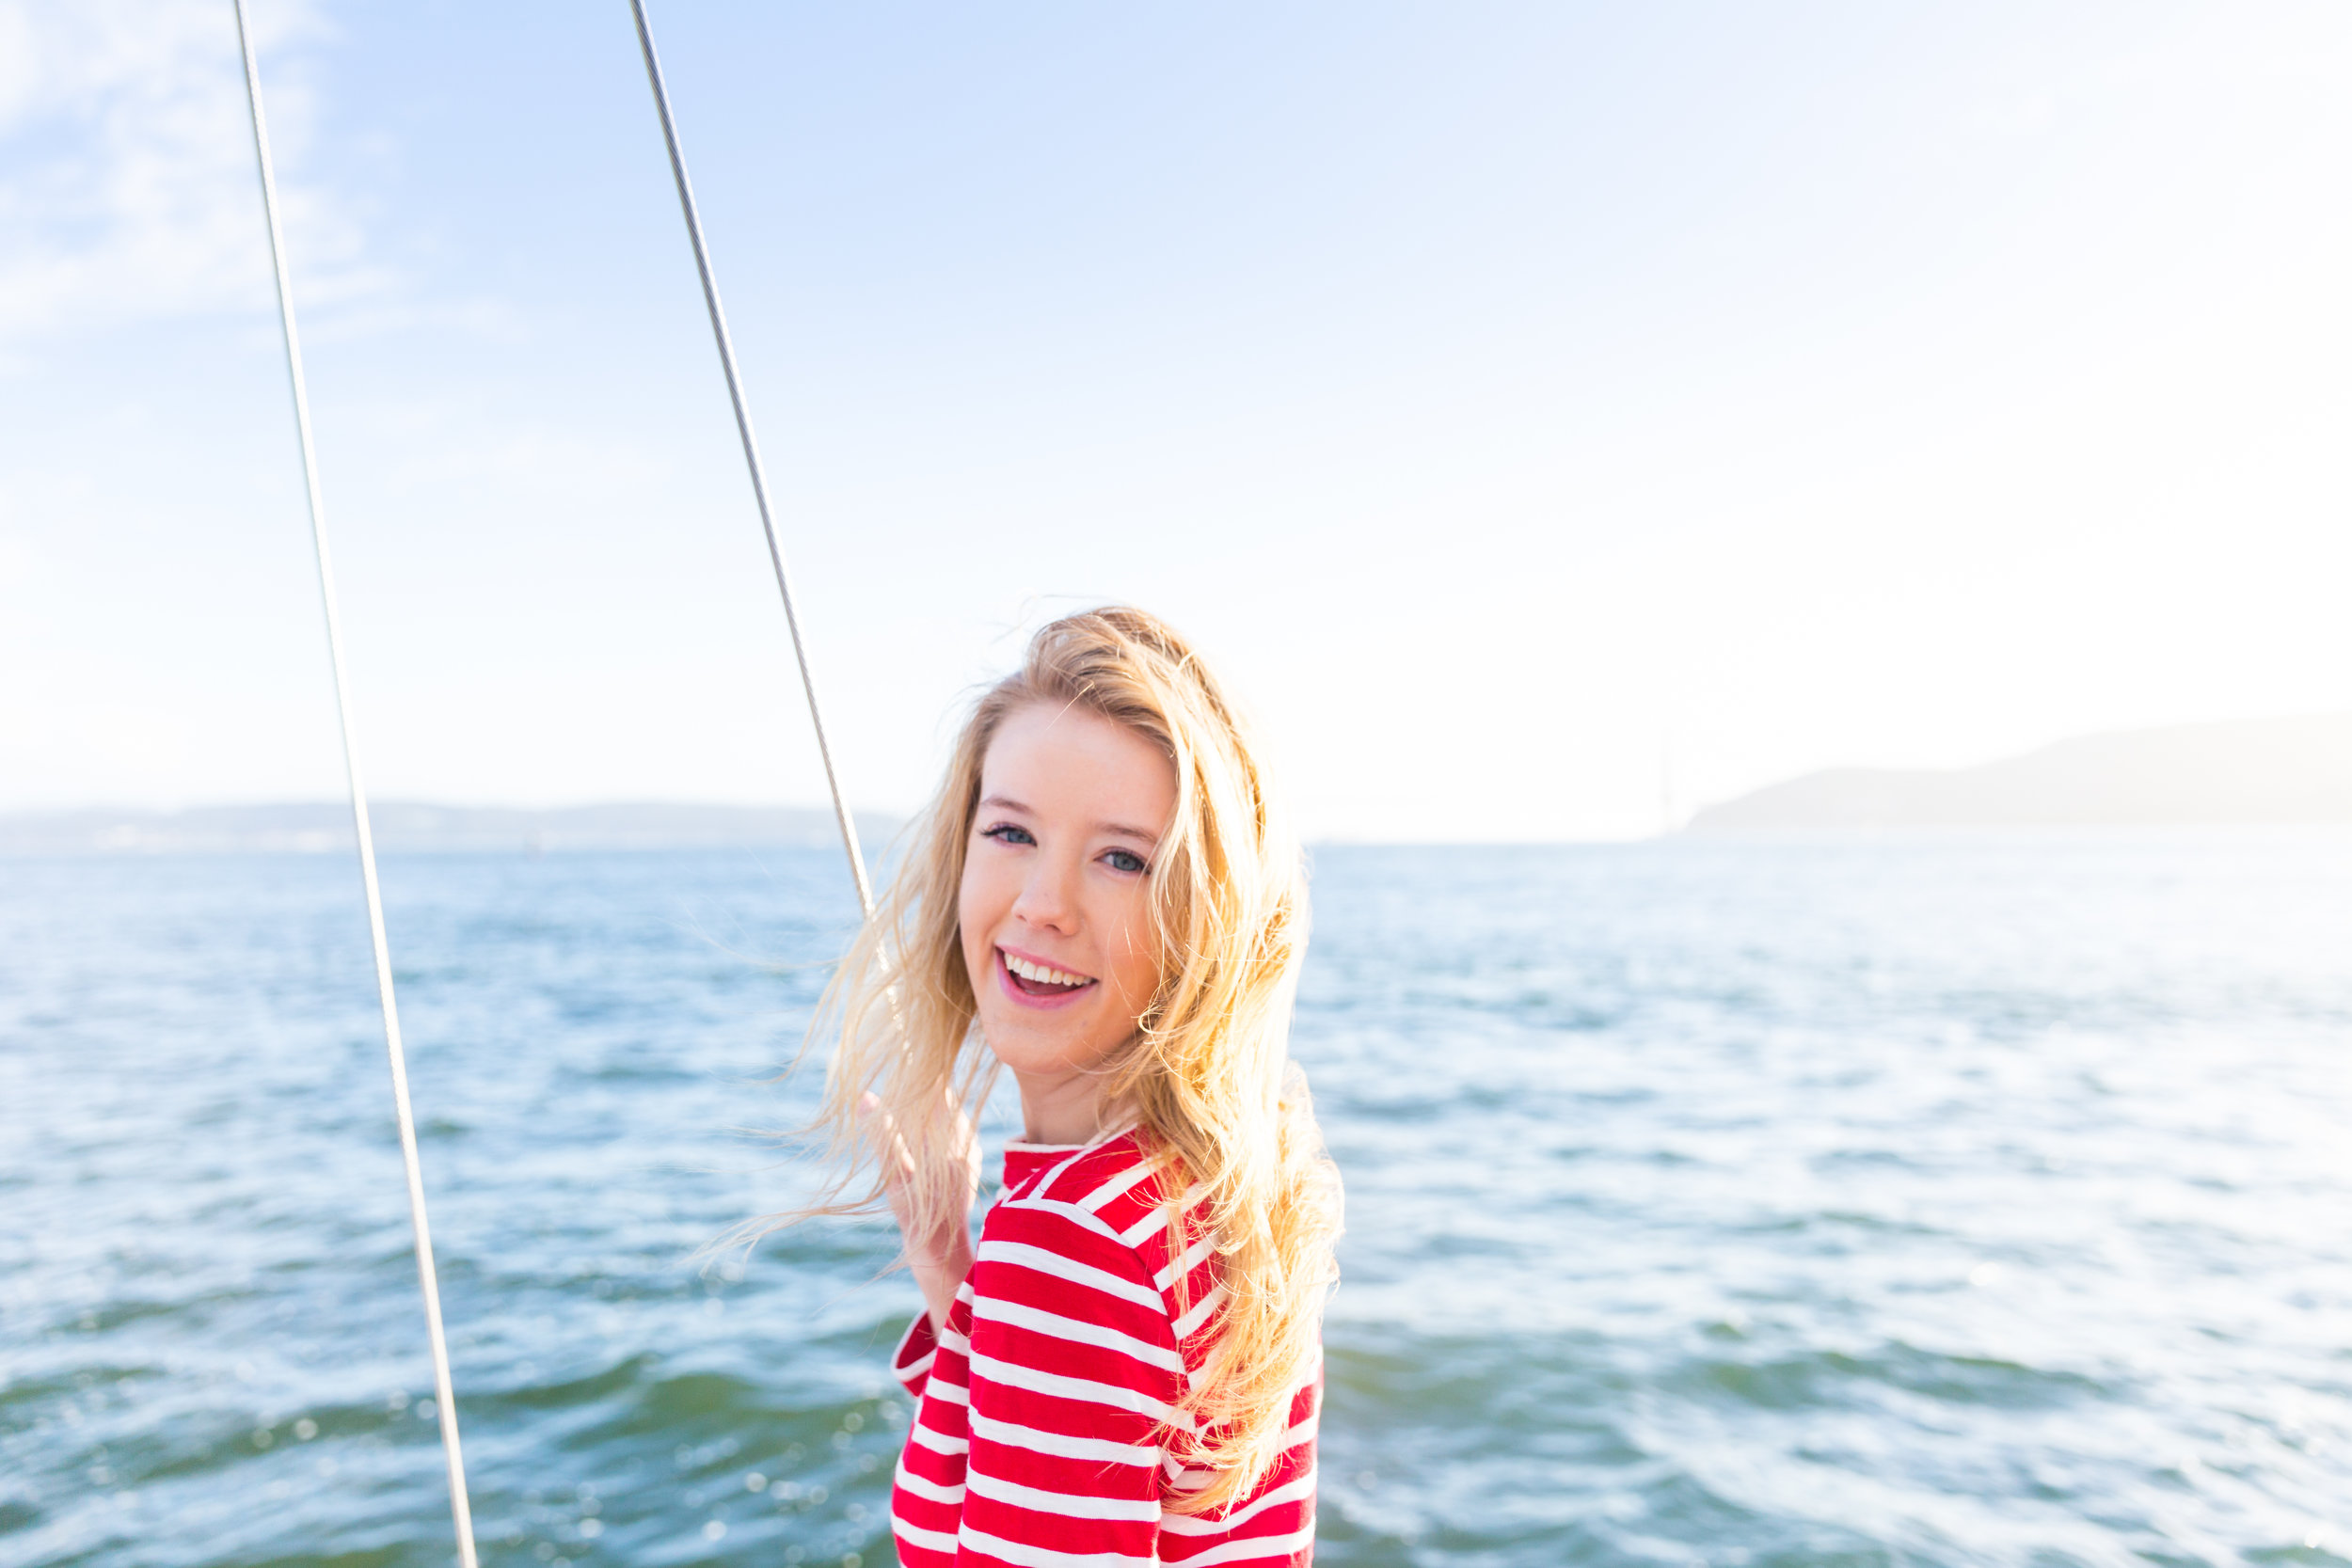 Striped Nautical Sunset Sail Outfit San Francisco-10.jpg